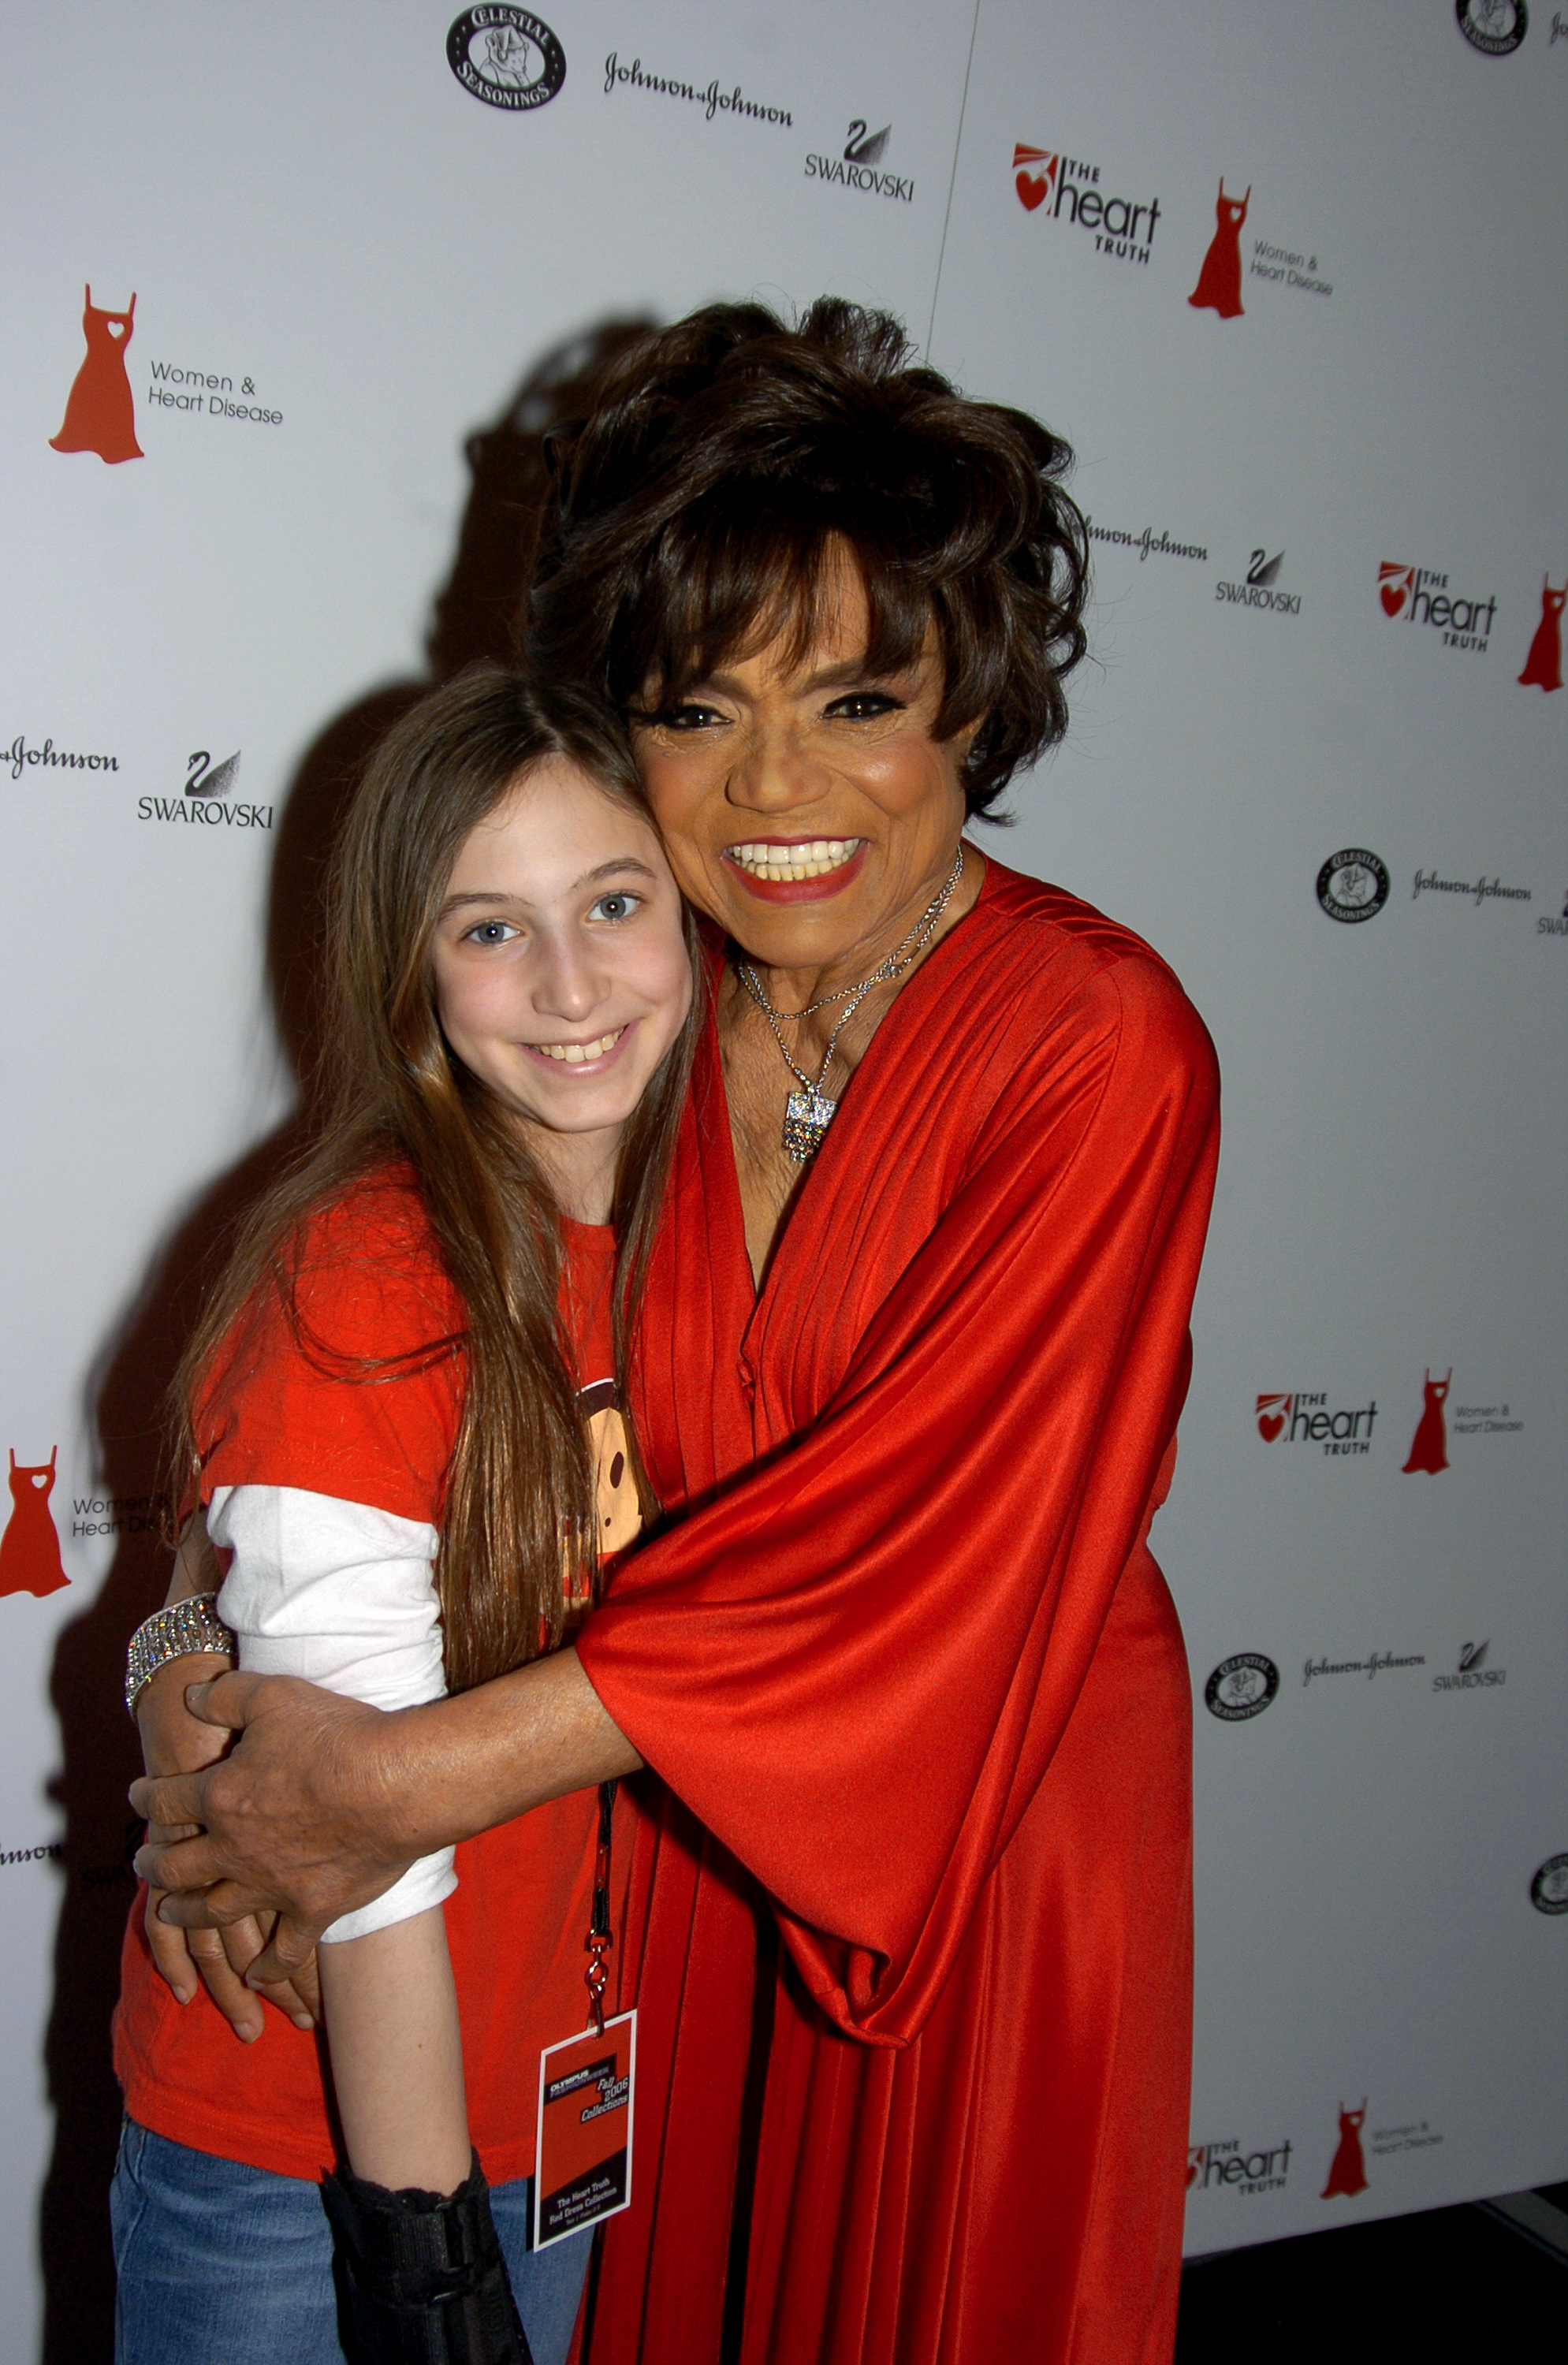 Eartha Kitt and her granddaughter Getty Images